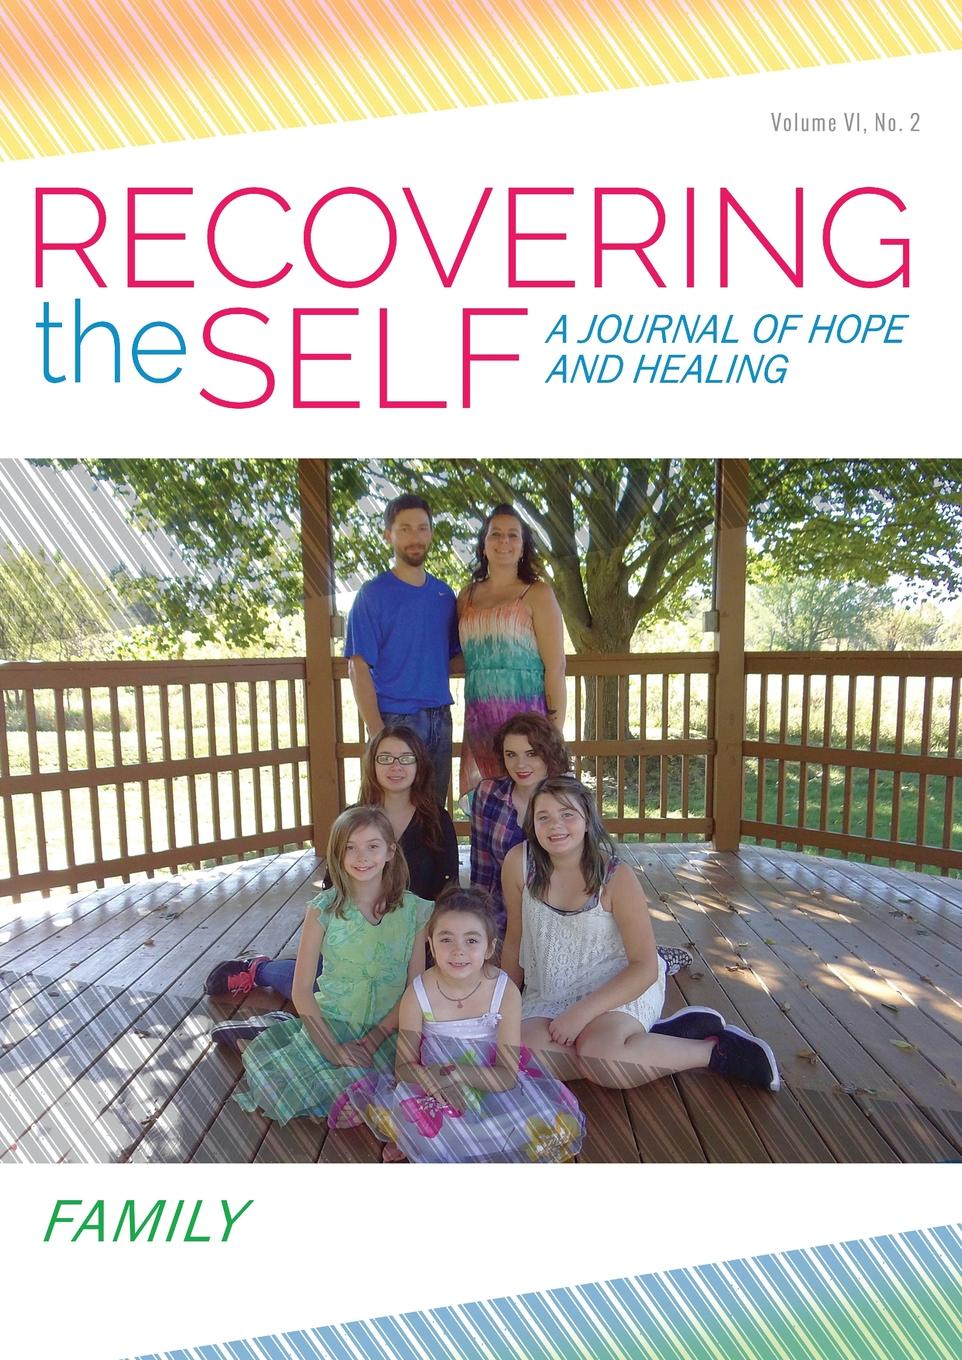 Bernie Siegel, Holli Kenley Recovering the Self. A Journal of Hope and Healing (Vol. VI, No. 2) -- Family recovering the self